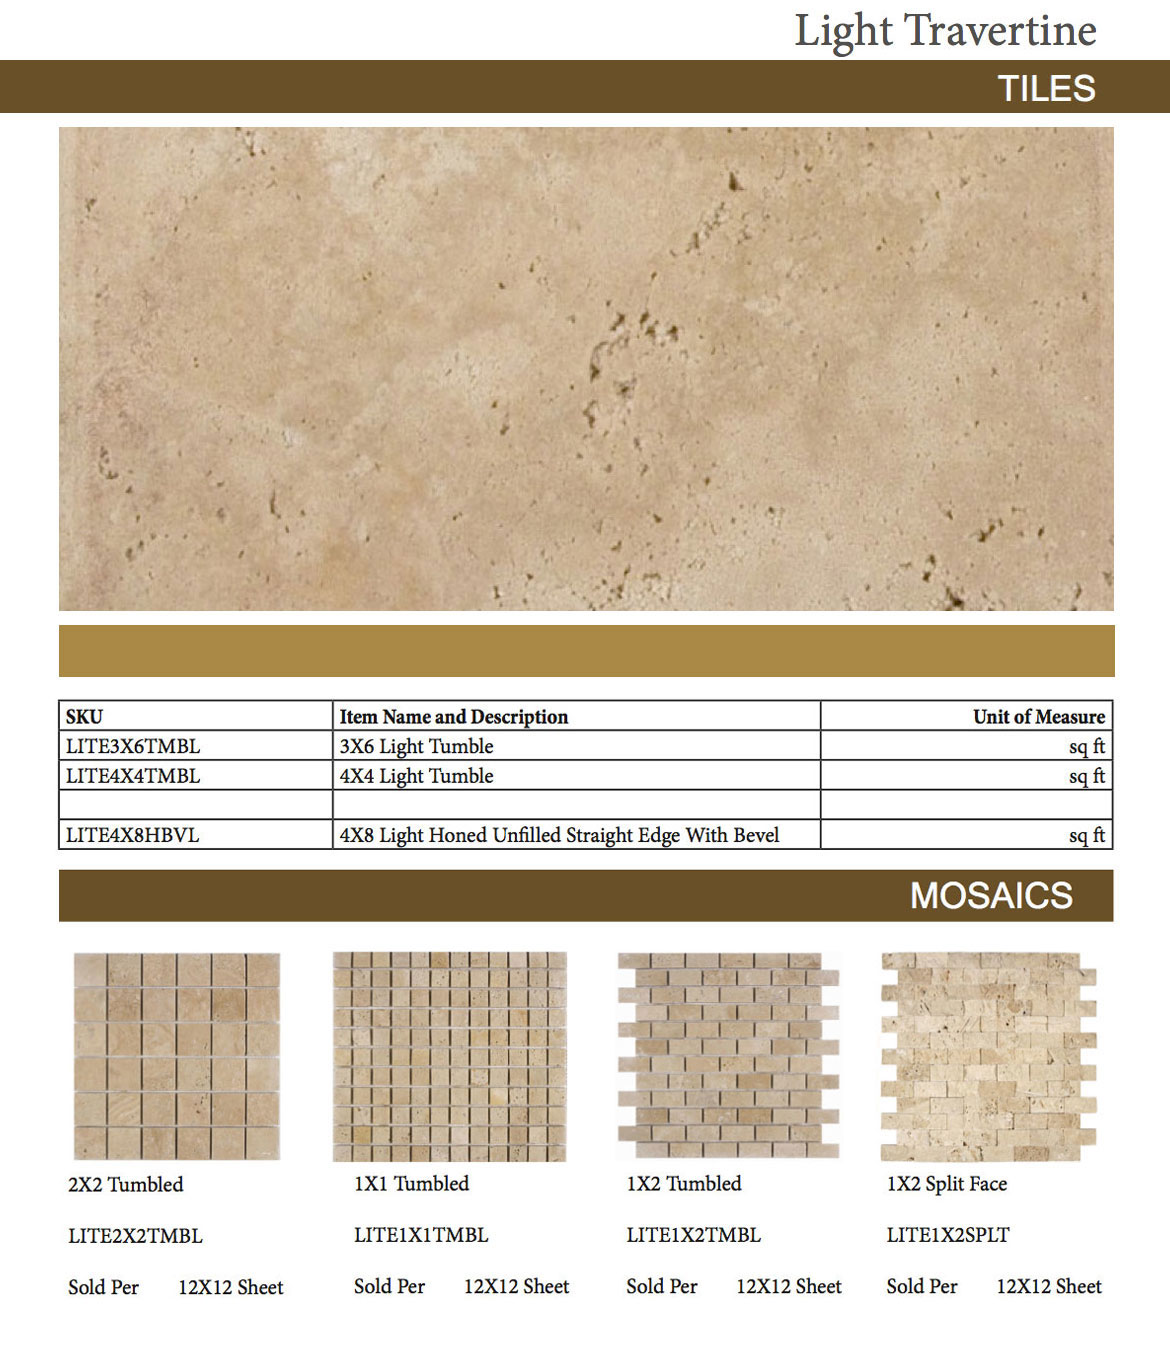 LIght-Travertine-Tiles-and-Mosaics